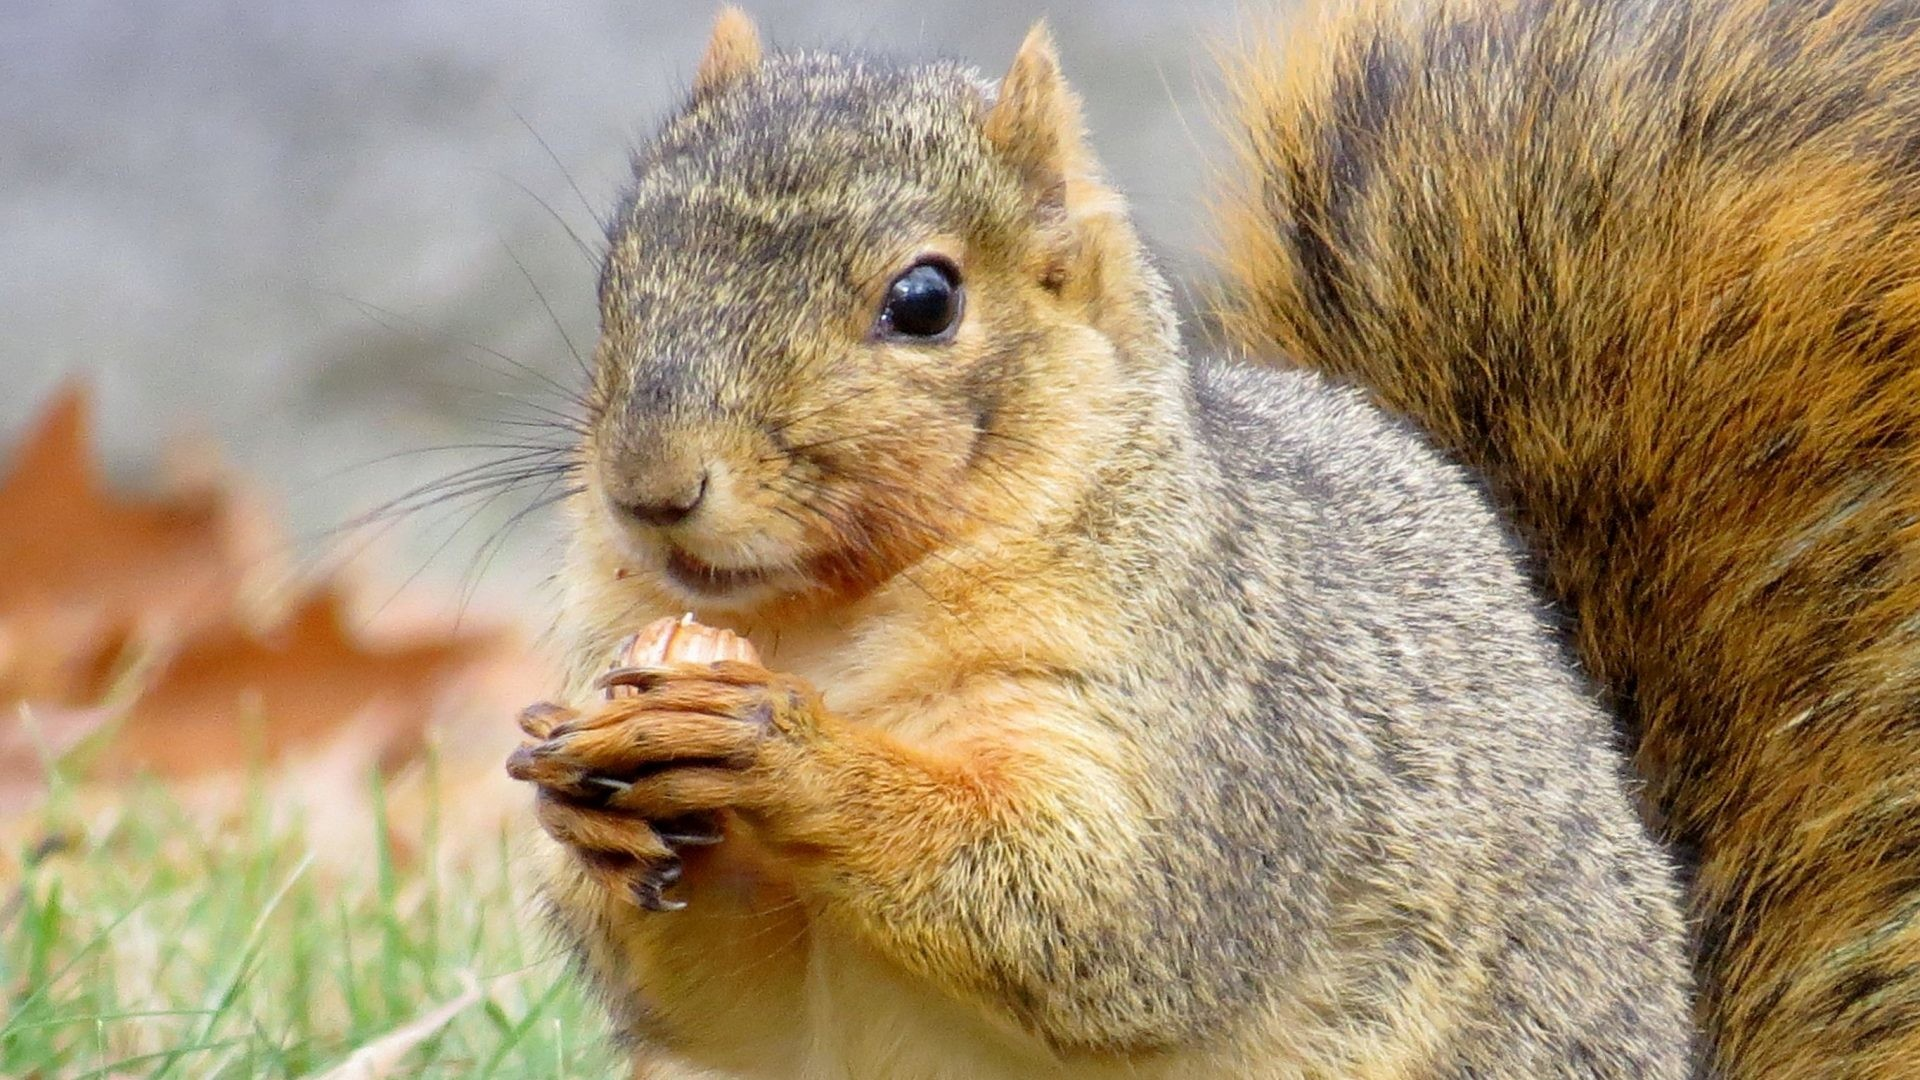 Res: 1920x1080, Squirrel Tag - Animal Fall Packing Leaf Squirrel Away Nut Autumn Nature  Image for HD 16